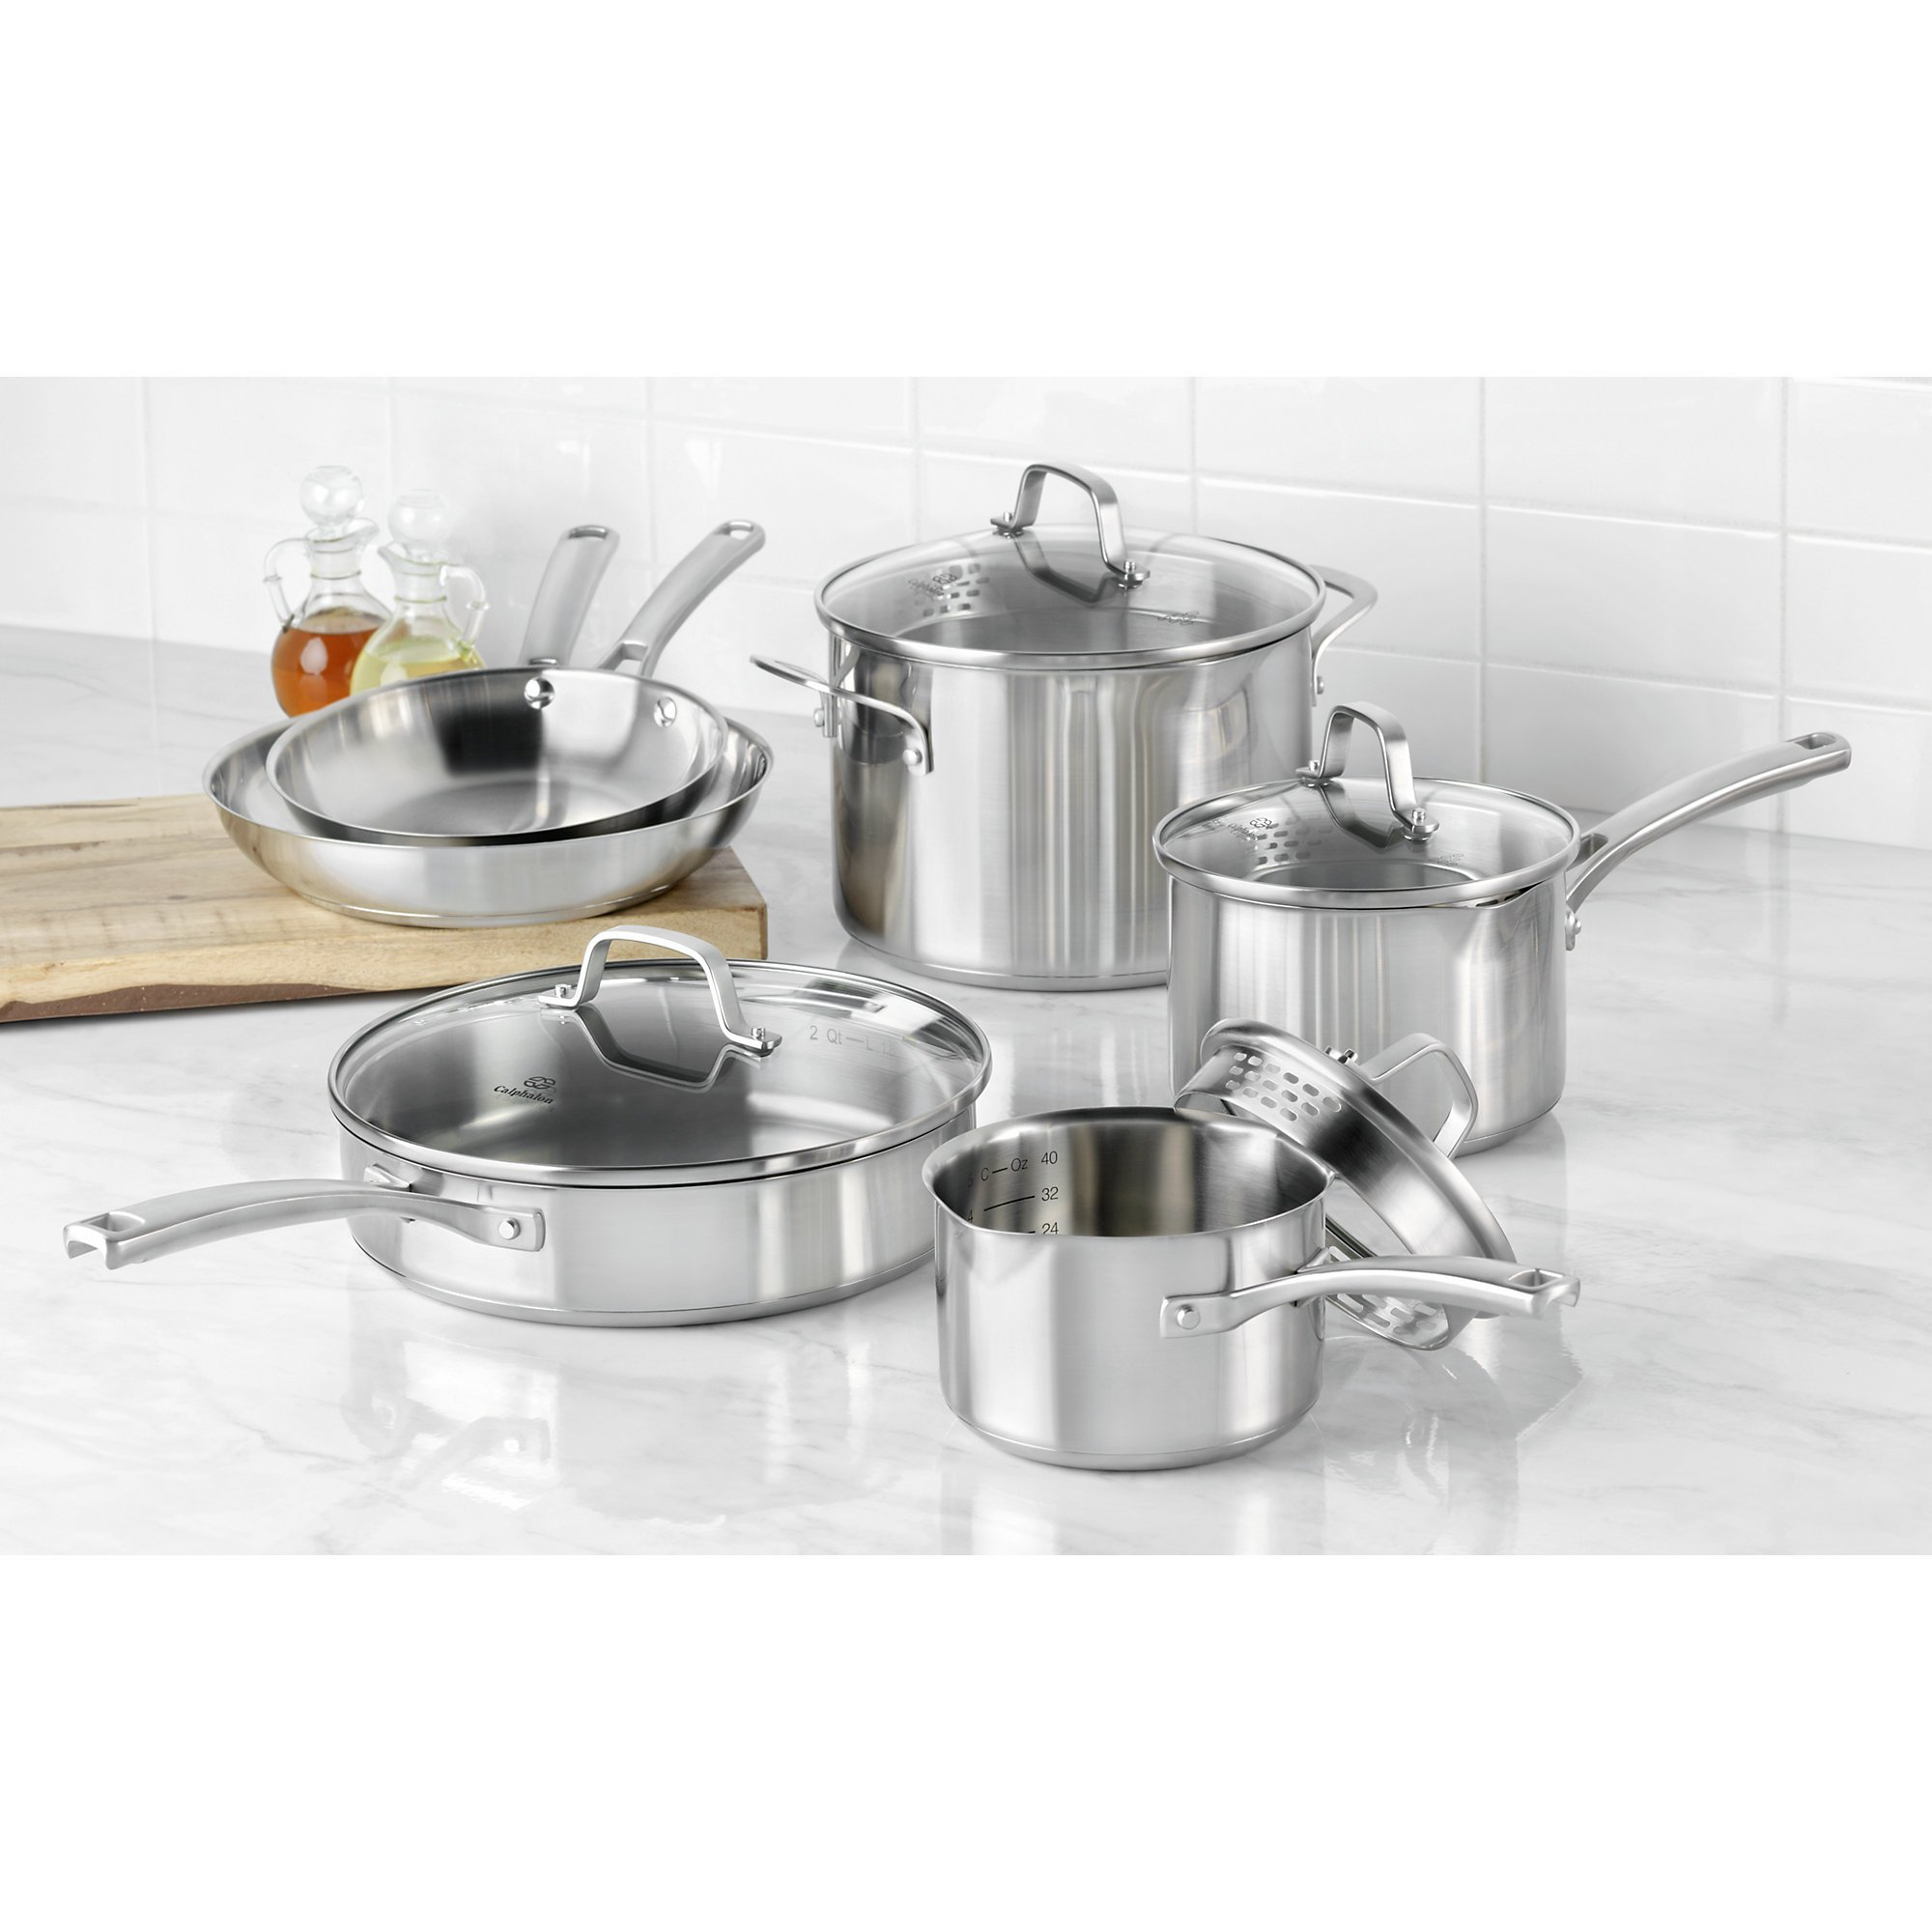 Calphalon Classic Stainless Steel Cookware Set, 10-Piece by Calphalon (Image #2)